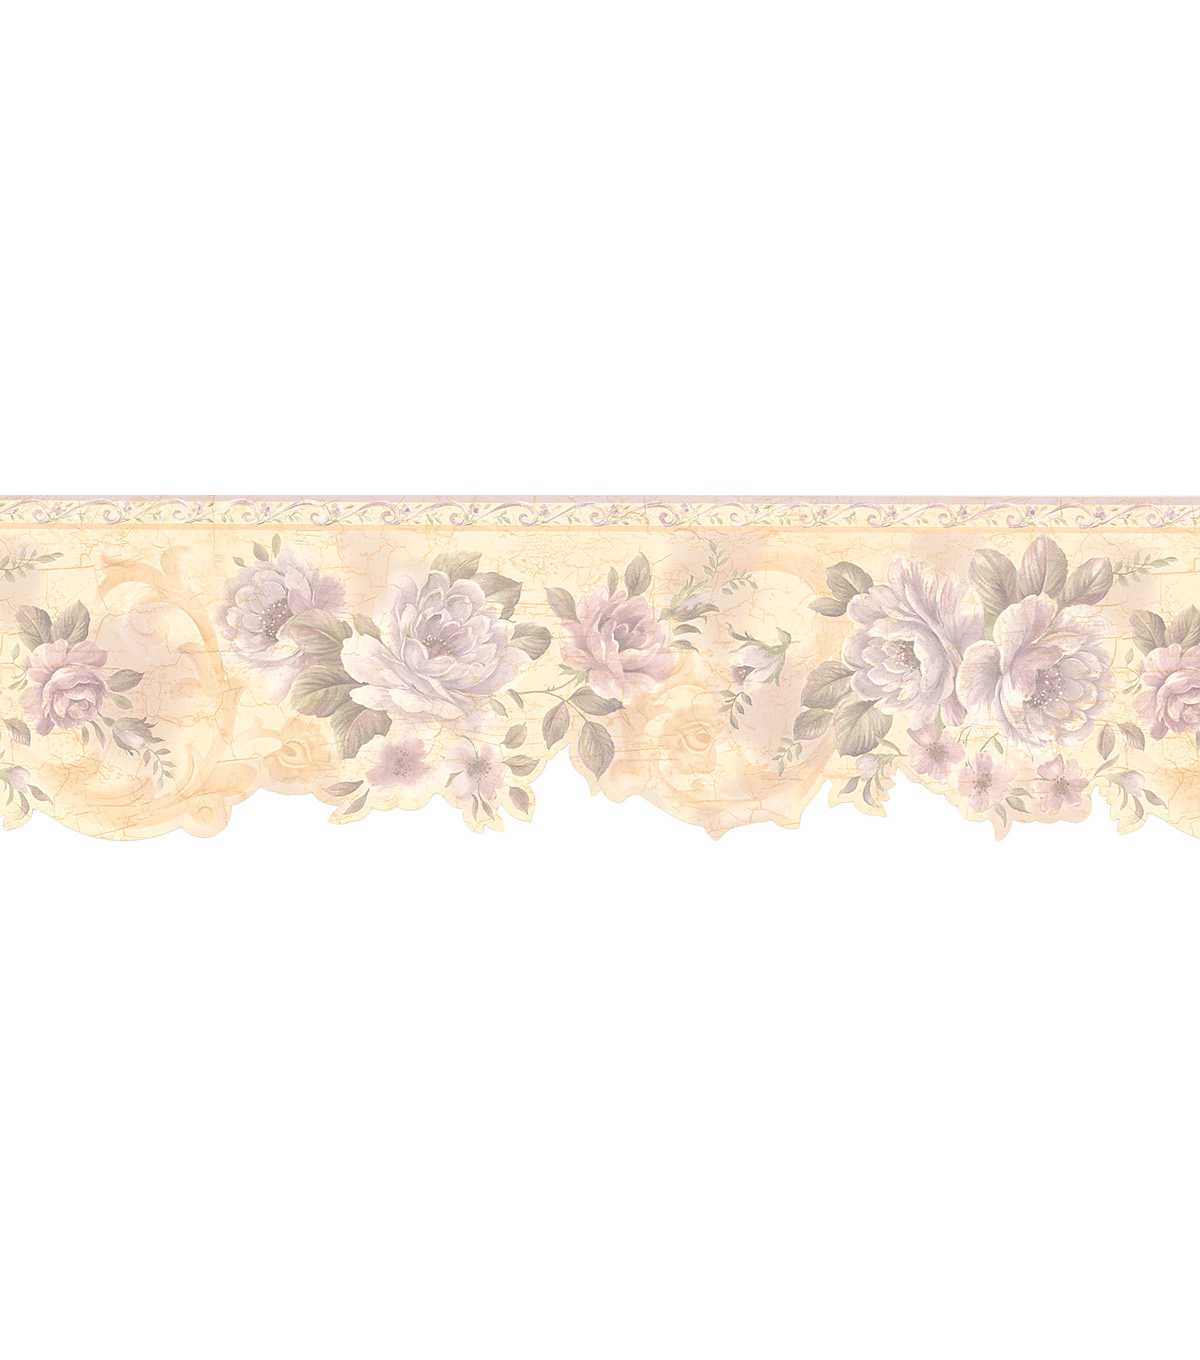 Flower Scroll Die-Cut Wallpaper Border, Cream